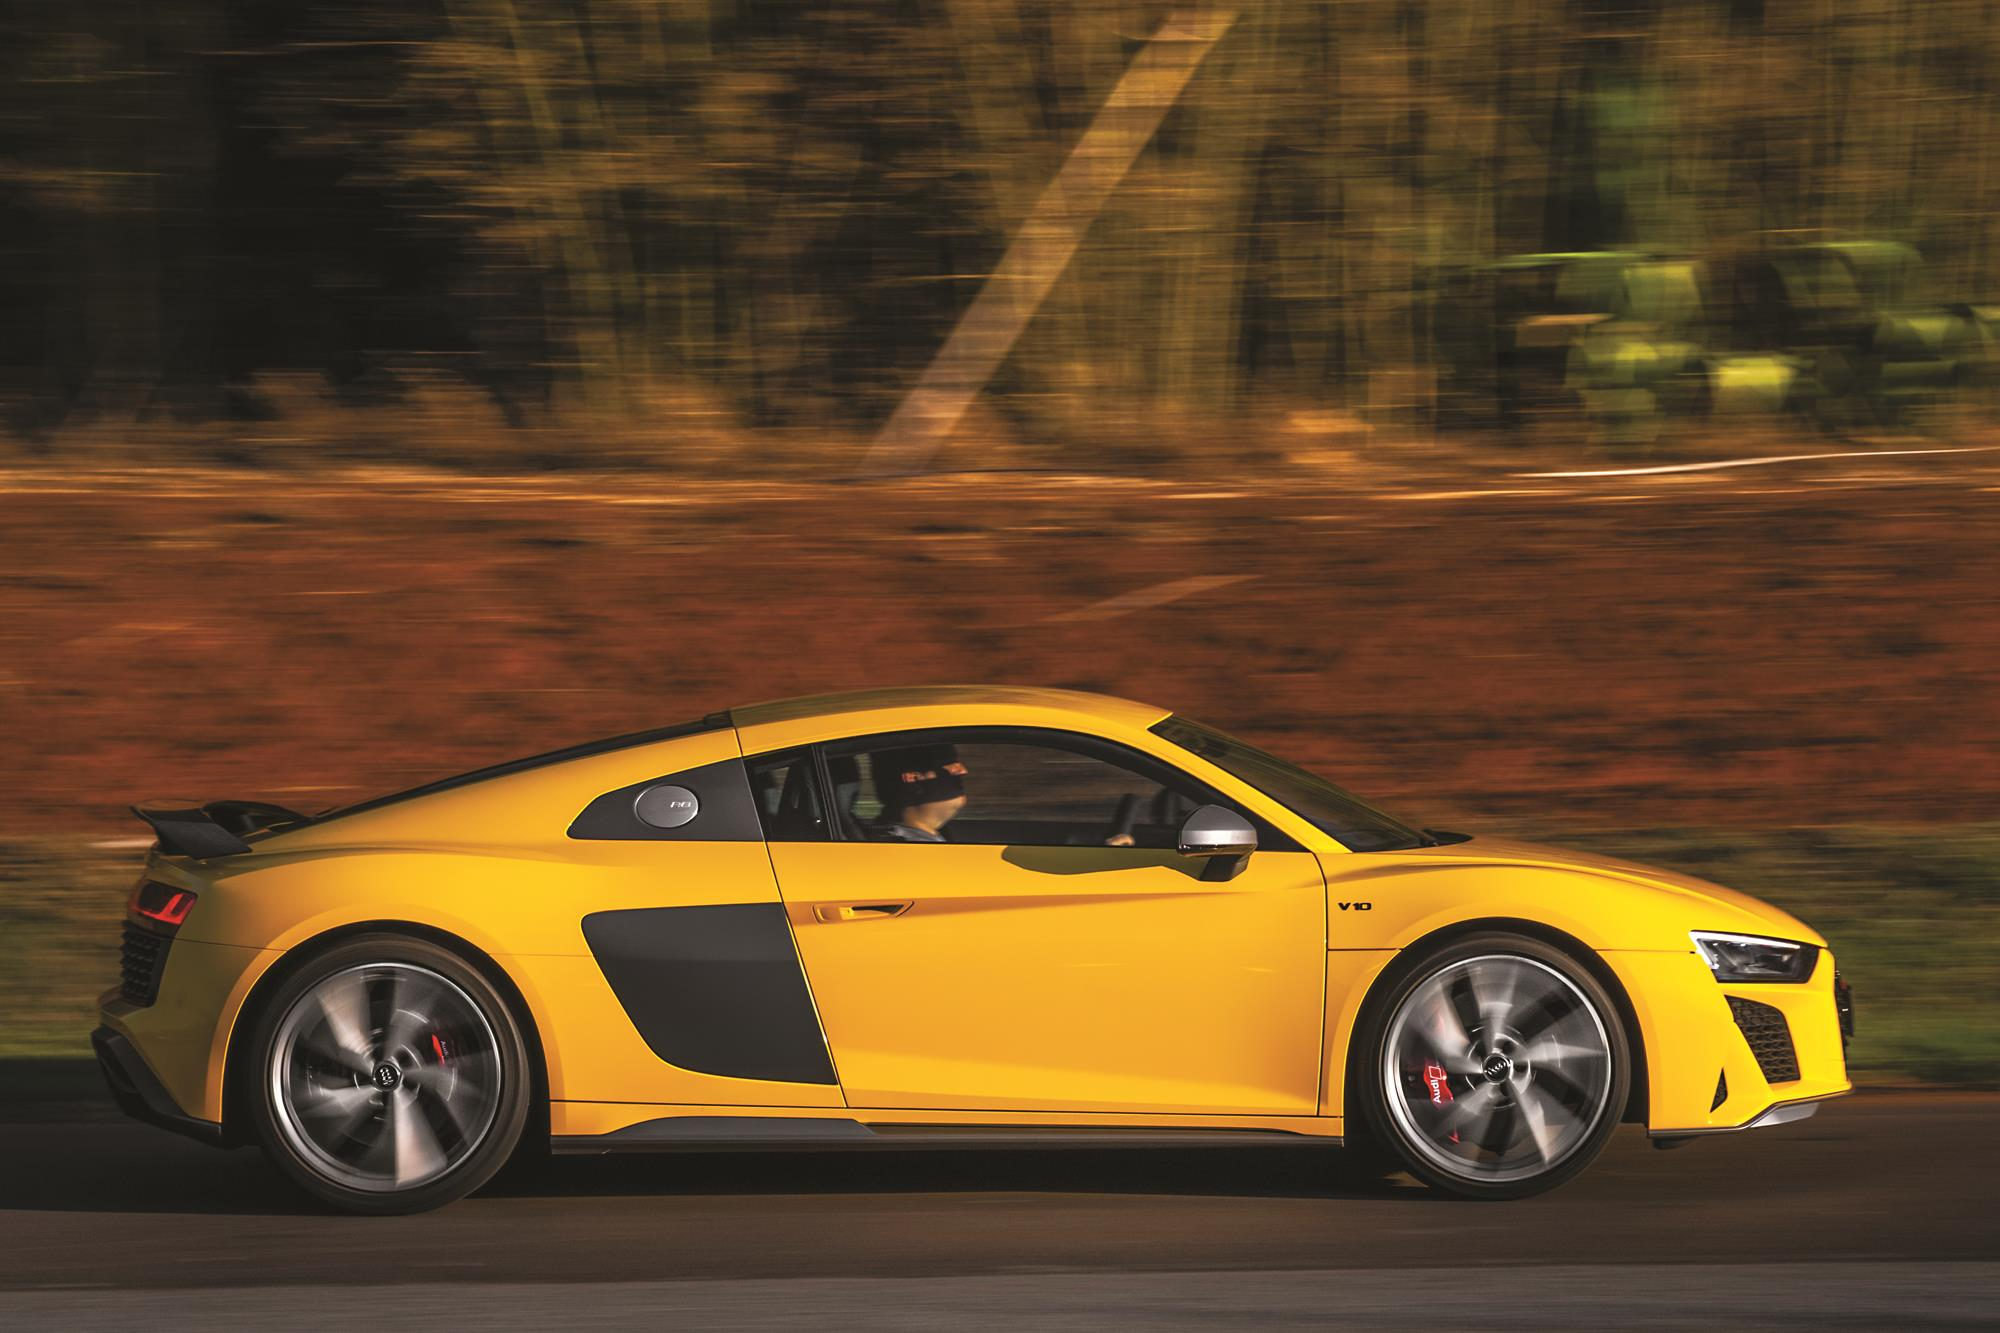 Audi R8 V10 Performance 2020 amarelo lateral